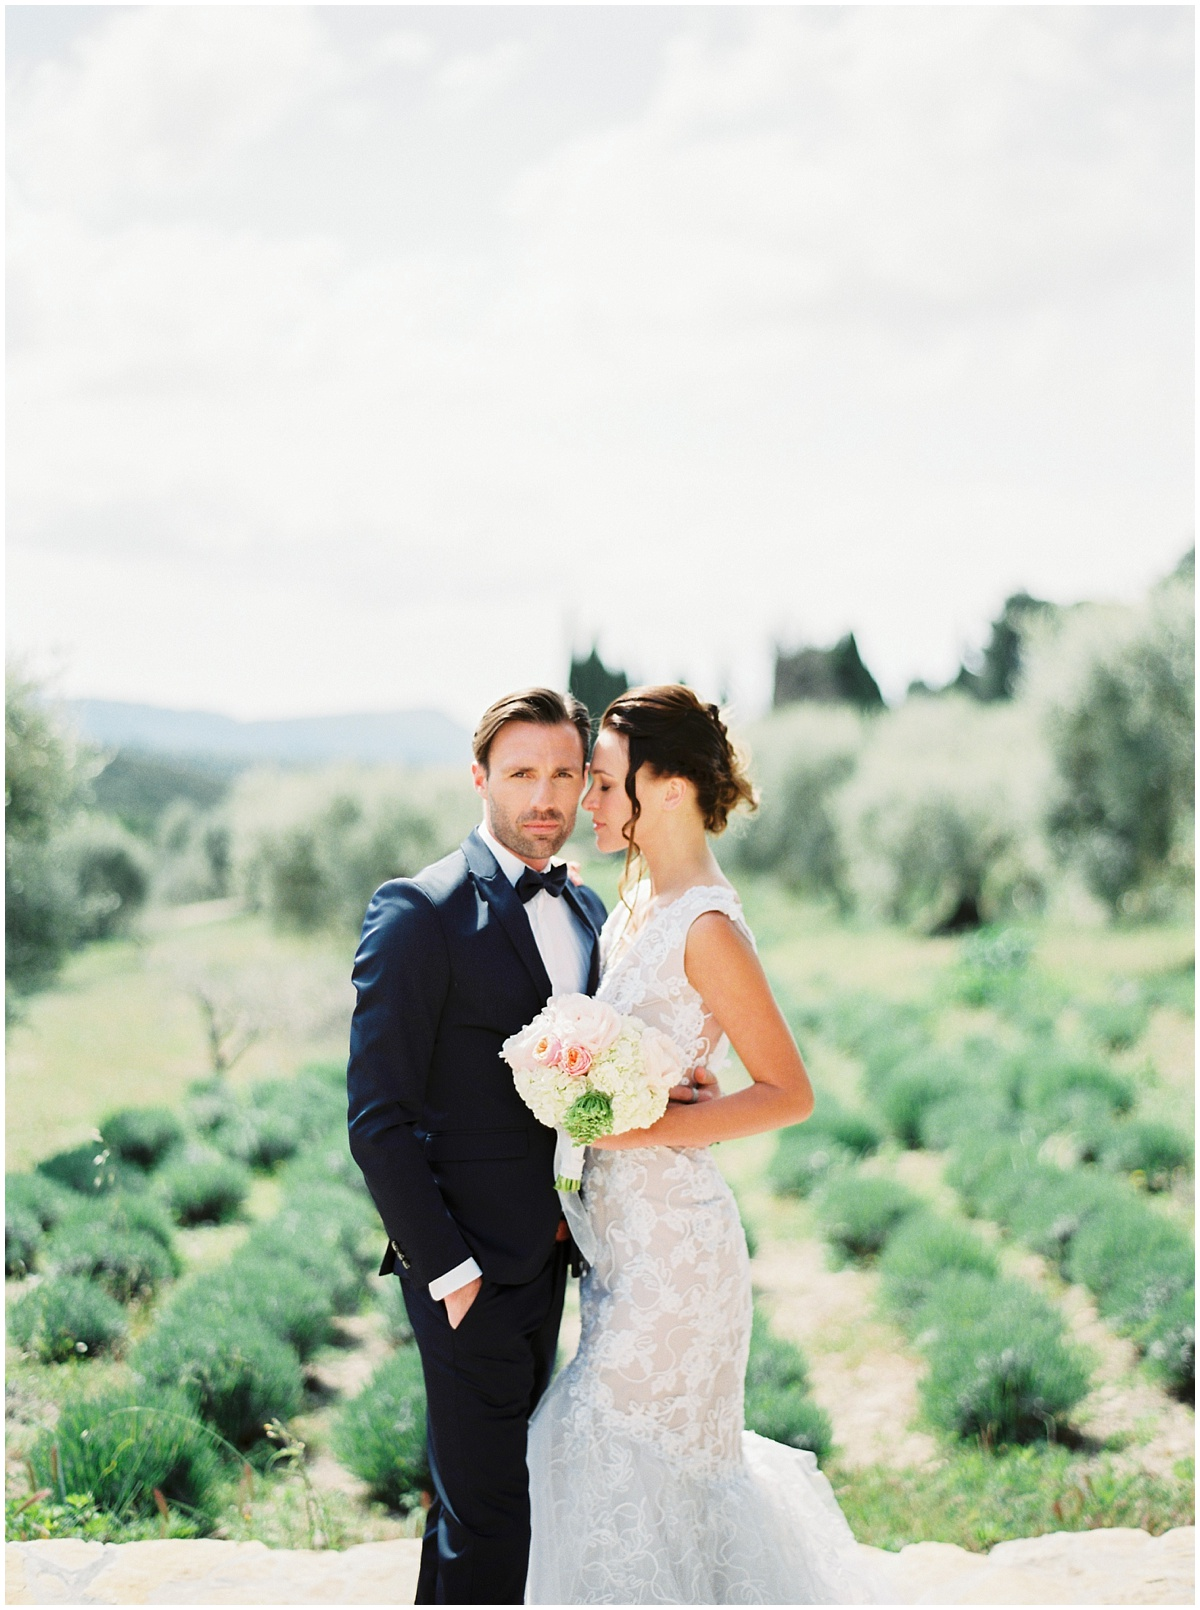 French Destination wedding photographer in provence Christophe Serrano